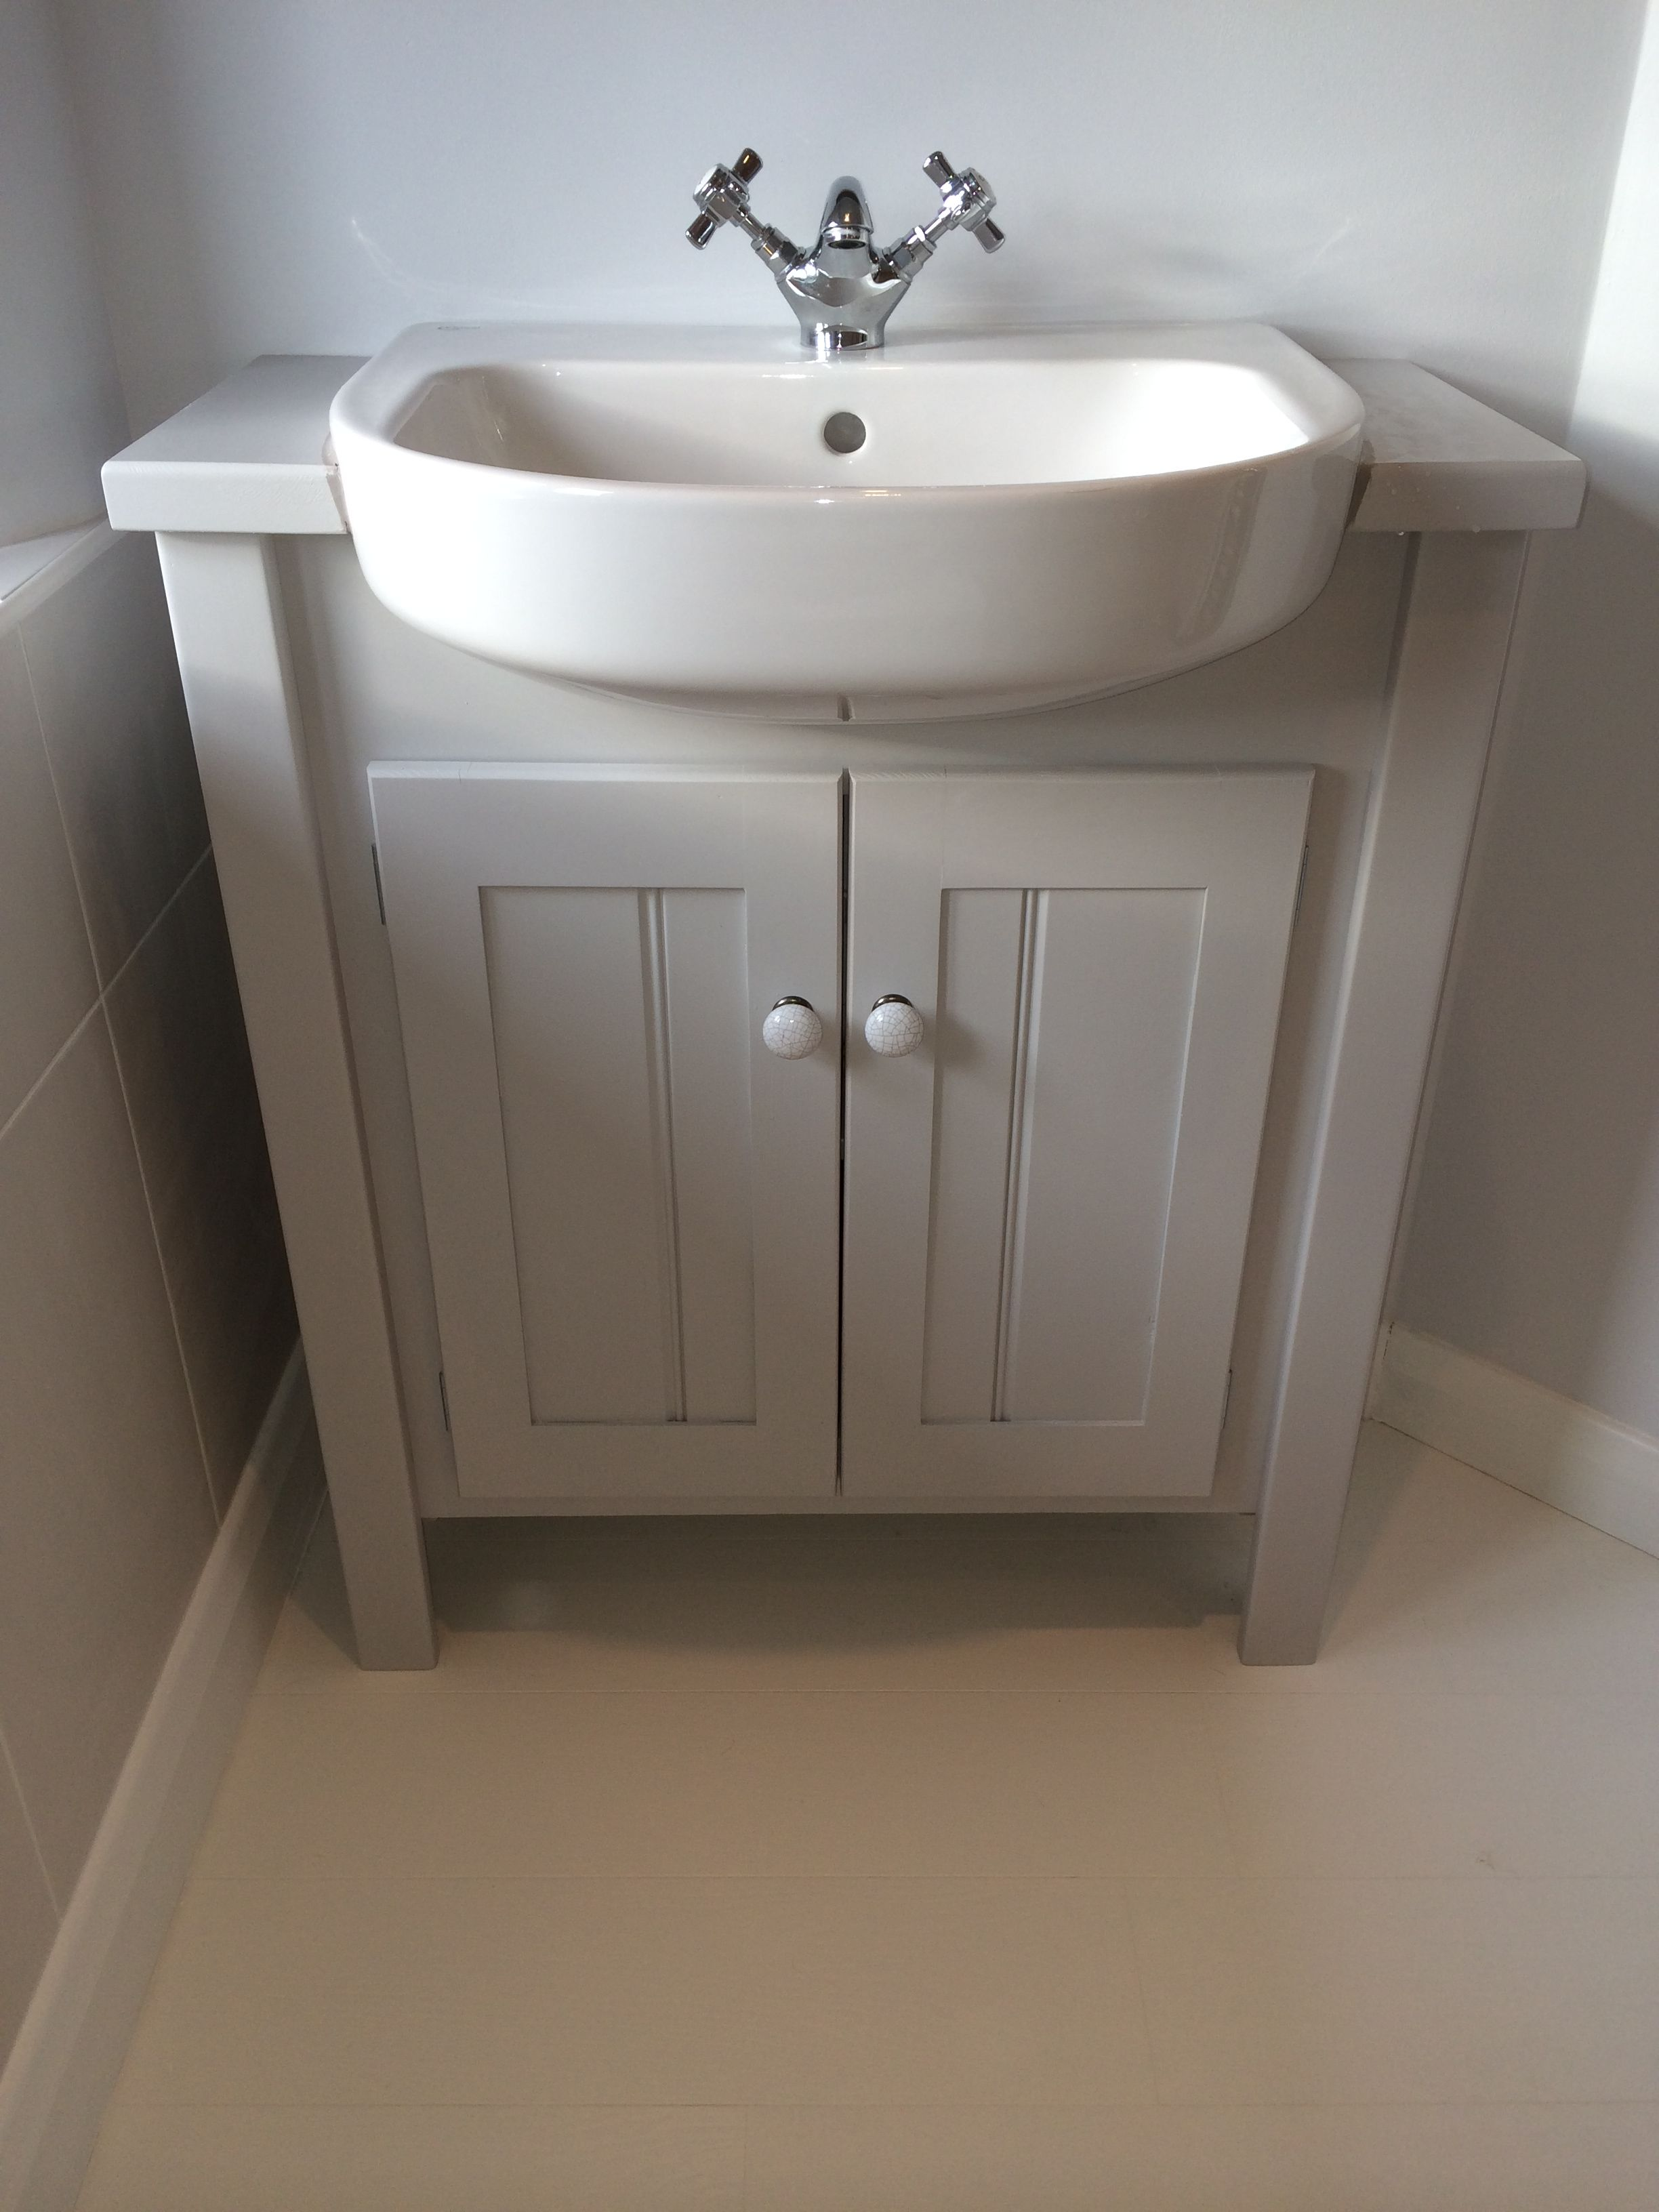 Pavilion grey vanity unit with built in sink this colour is from the farrow and ball range Design your own bathroom uk